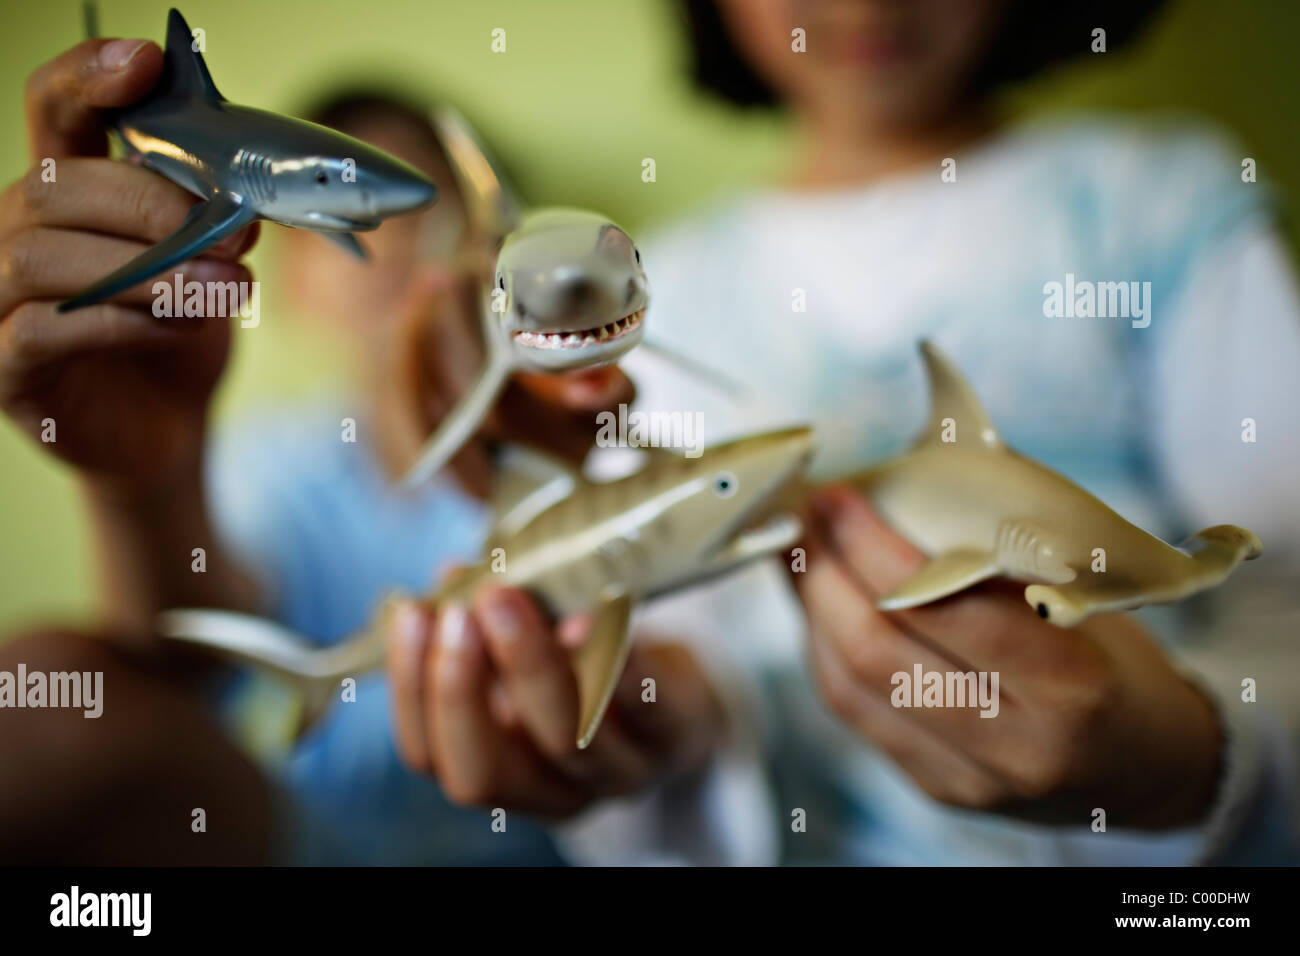 Children hold toy sharks - Stock Image